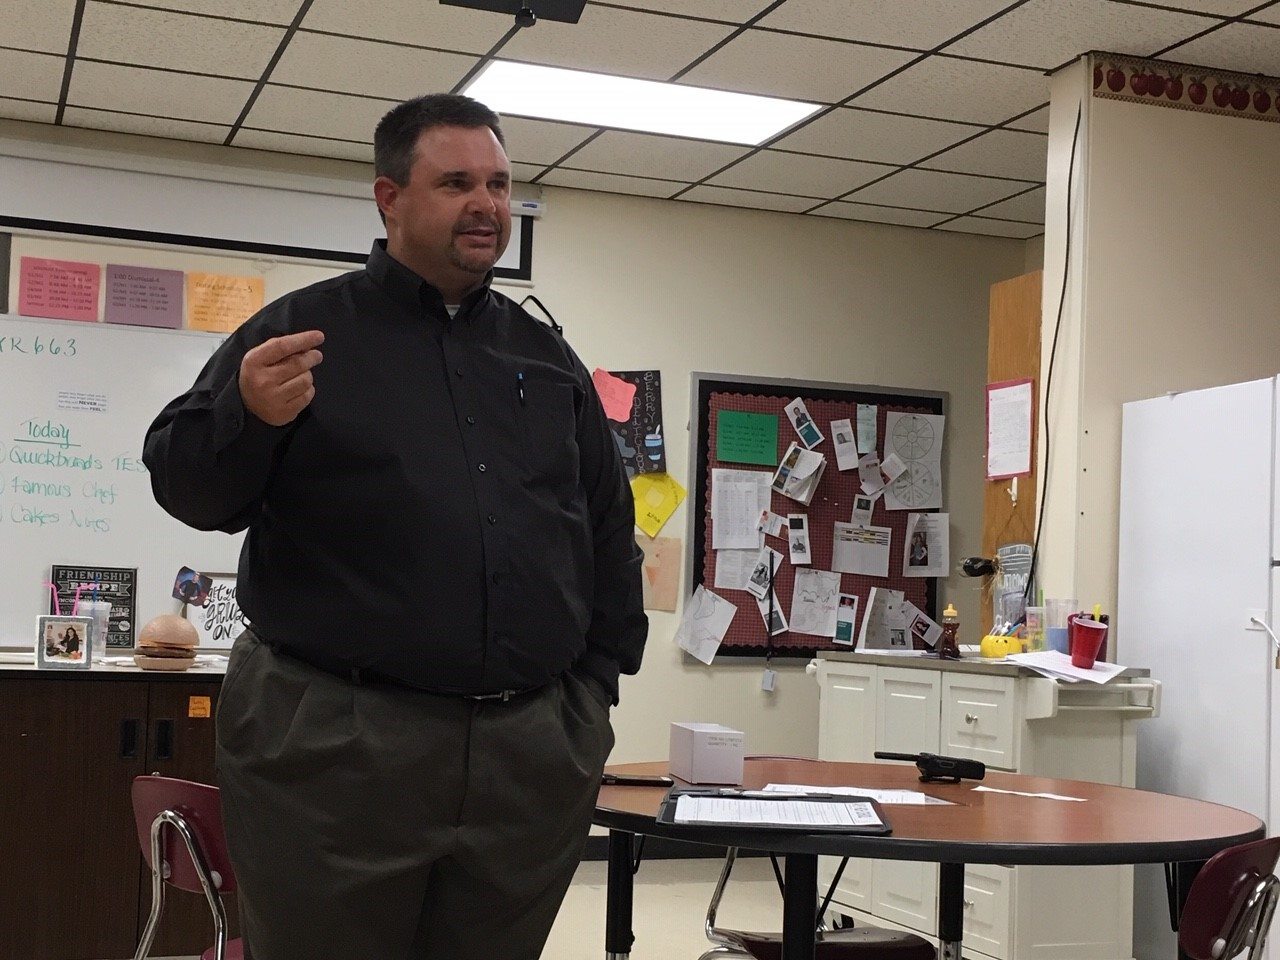 Chief Lending Officer for the Bank of Hays, Brandon Prough talks to students during PRIDE Time about his career in banking. Prough worked at USDA for 20 years before taking a job at Bank of Hays.